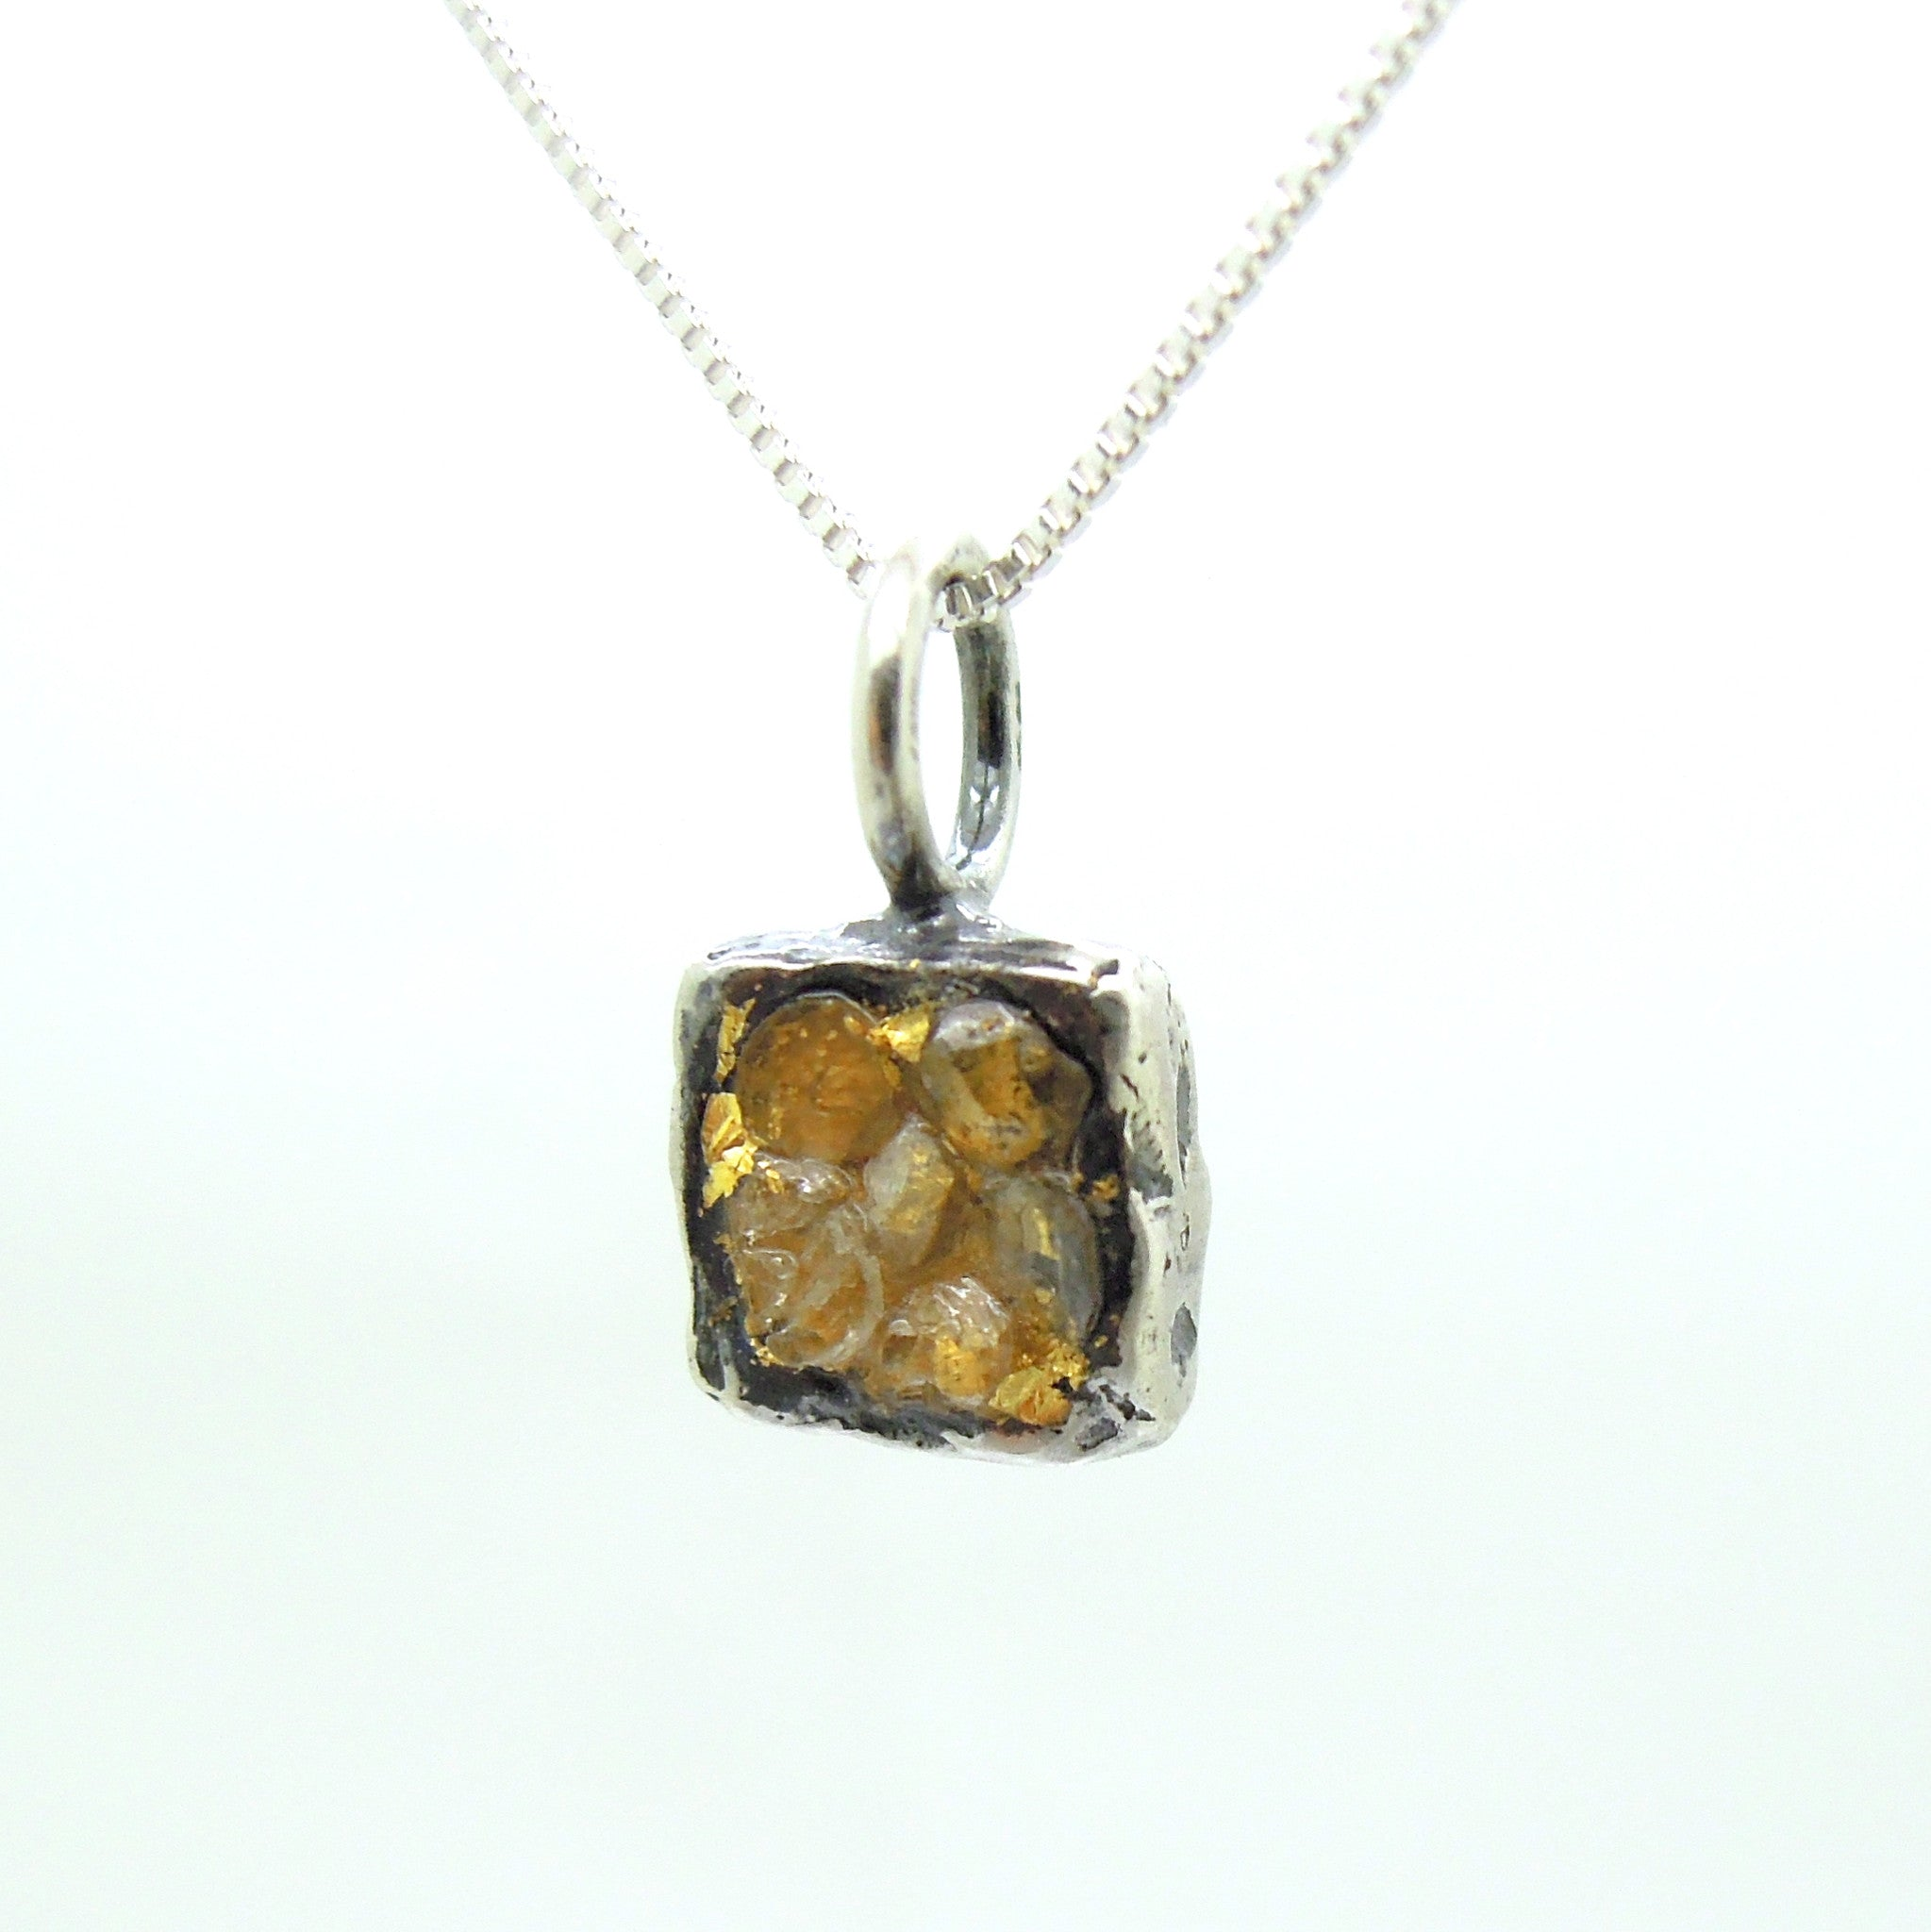 Raw diamond necklace pendant square pendant 24k yellow gold in raw diamond necklace pendant square pendant 24k yellow gold in oxidized silver silver chain included aloadofball Image collections